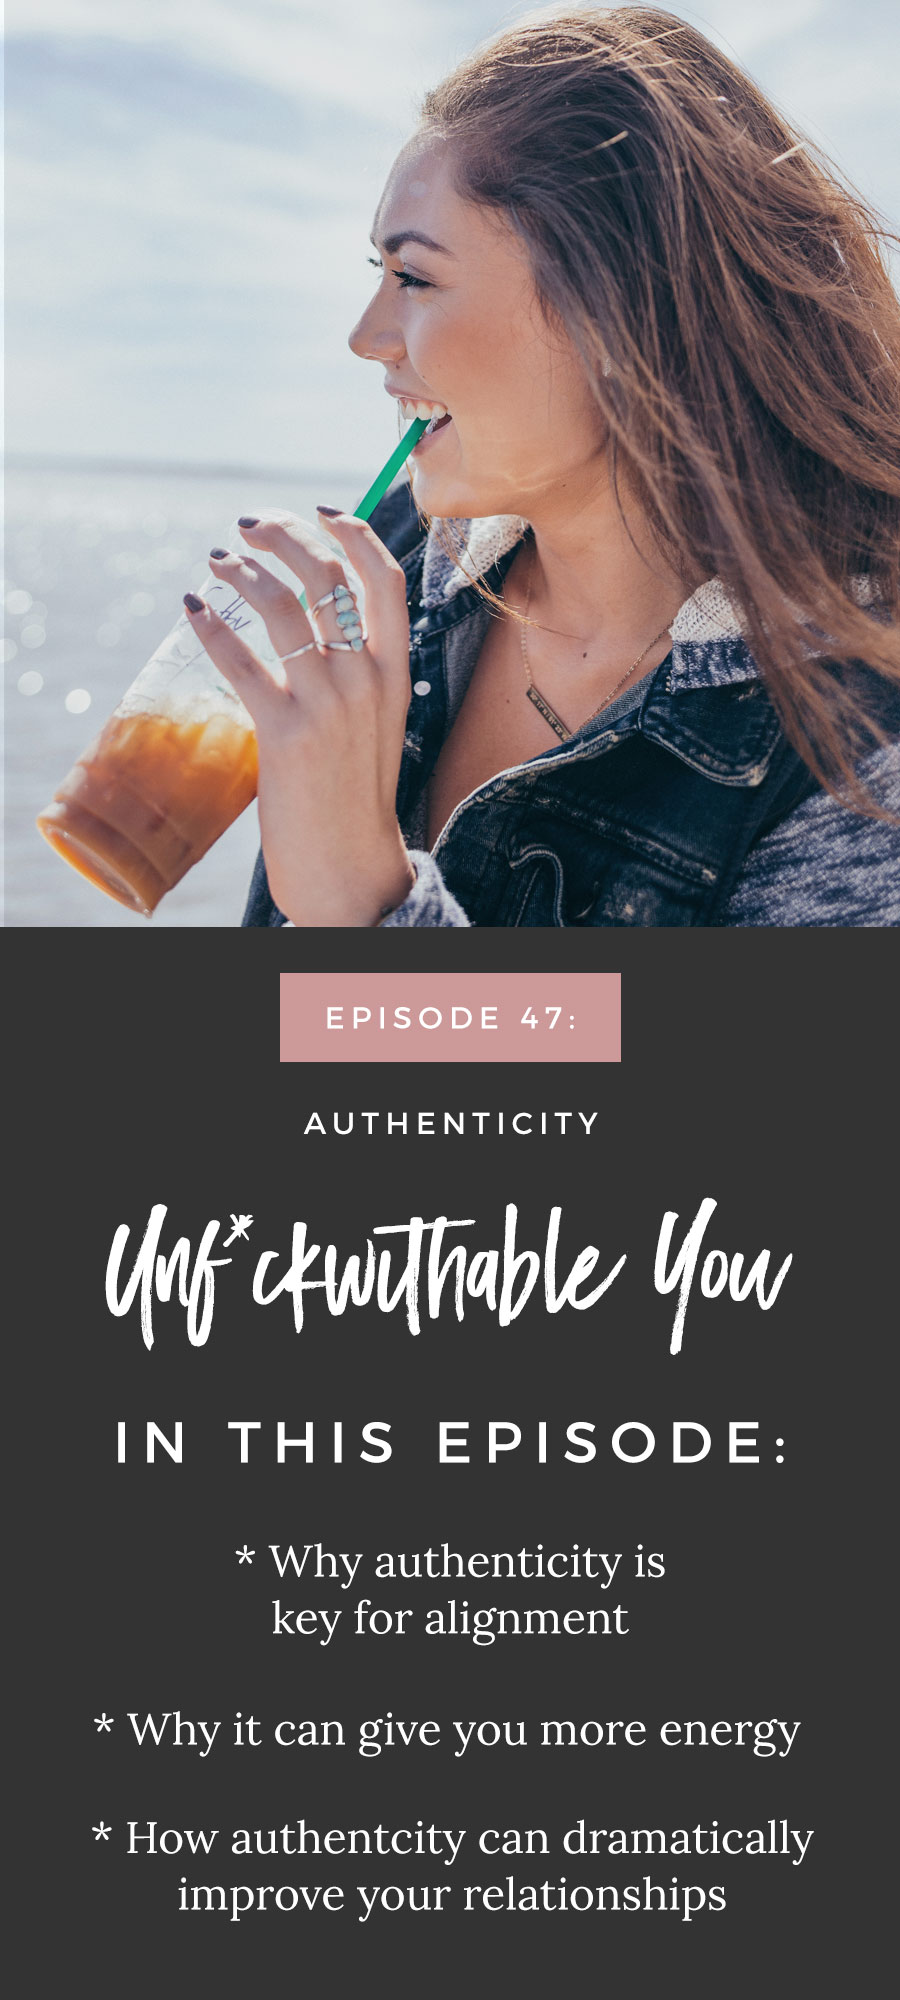 Unf*ckwithable You Episode 47: Authenticity